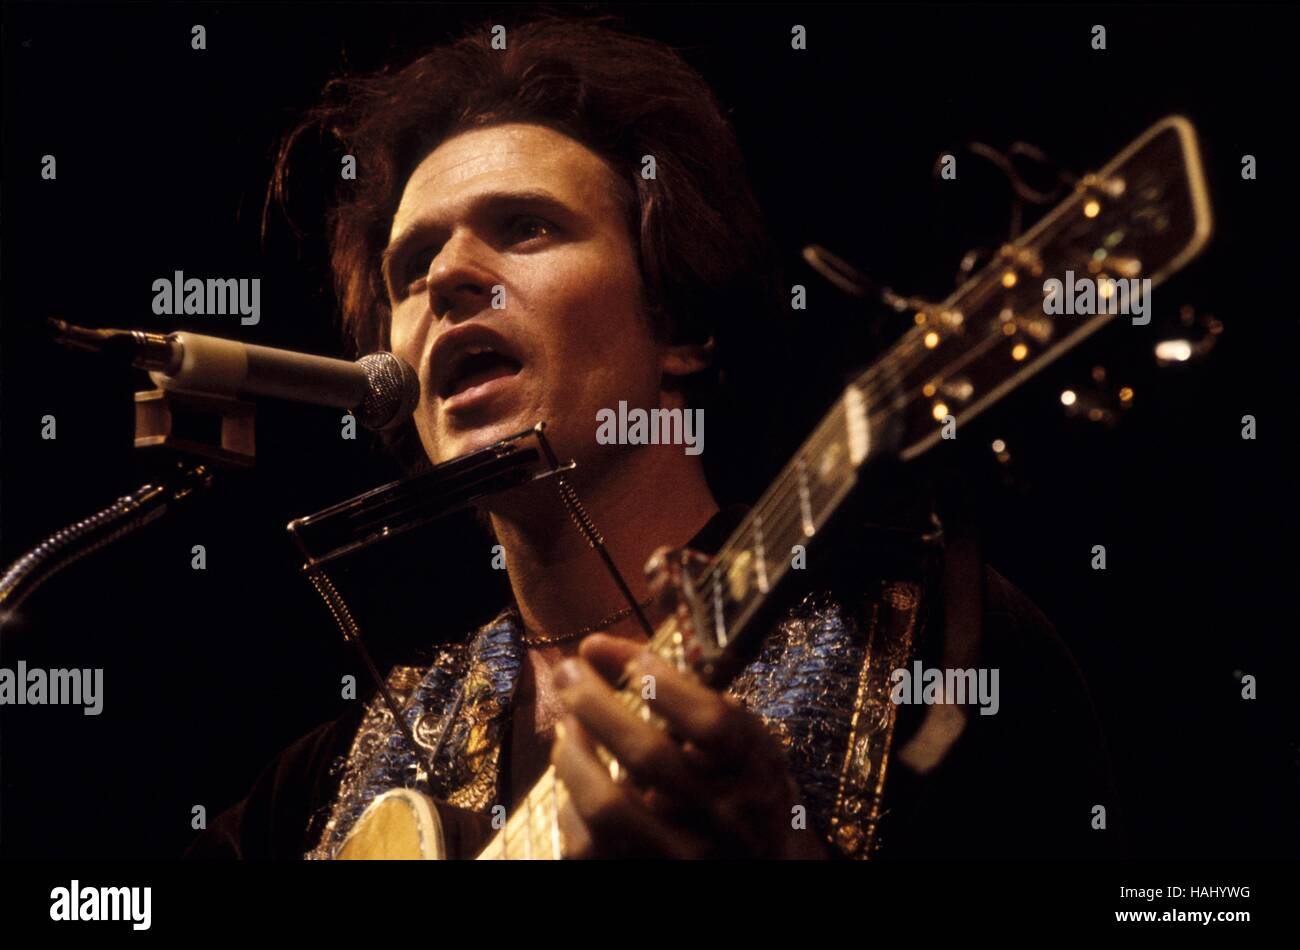 Country Joe McDonald - 28.03.1971 - Frankreich / Ile-de-France (Region) / Paris - Konzert Country Joe McDonald, Stockbild